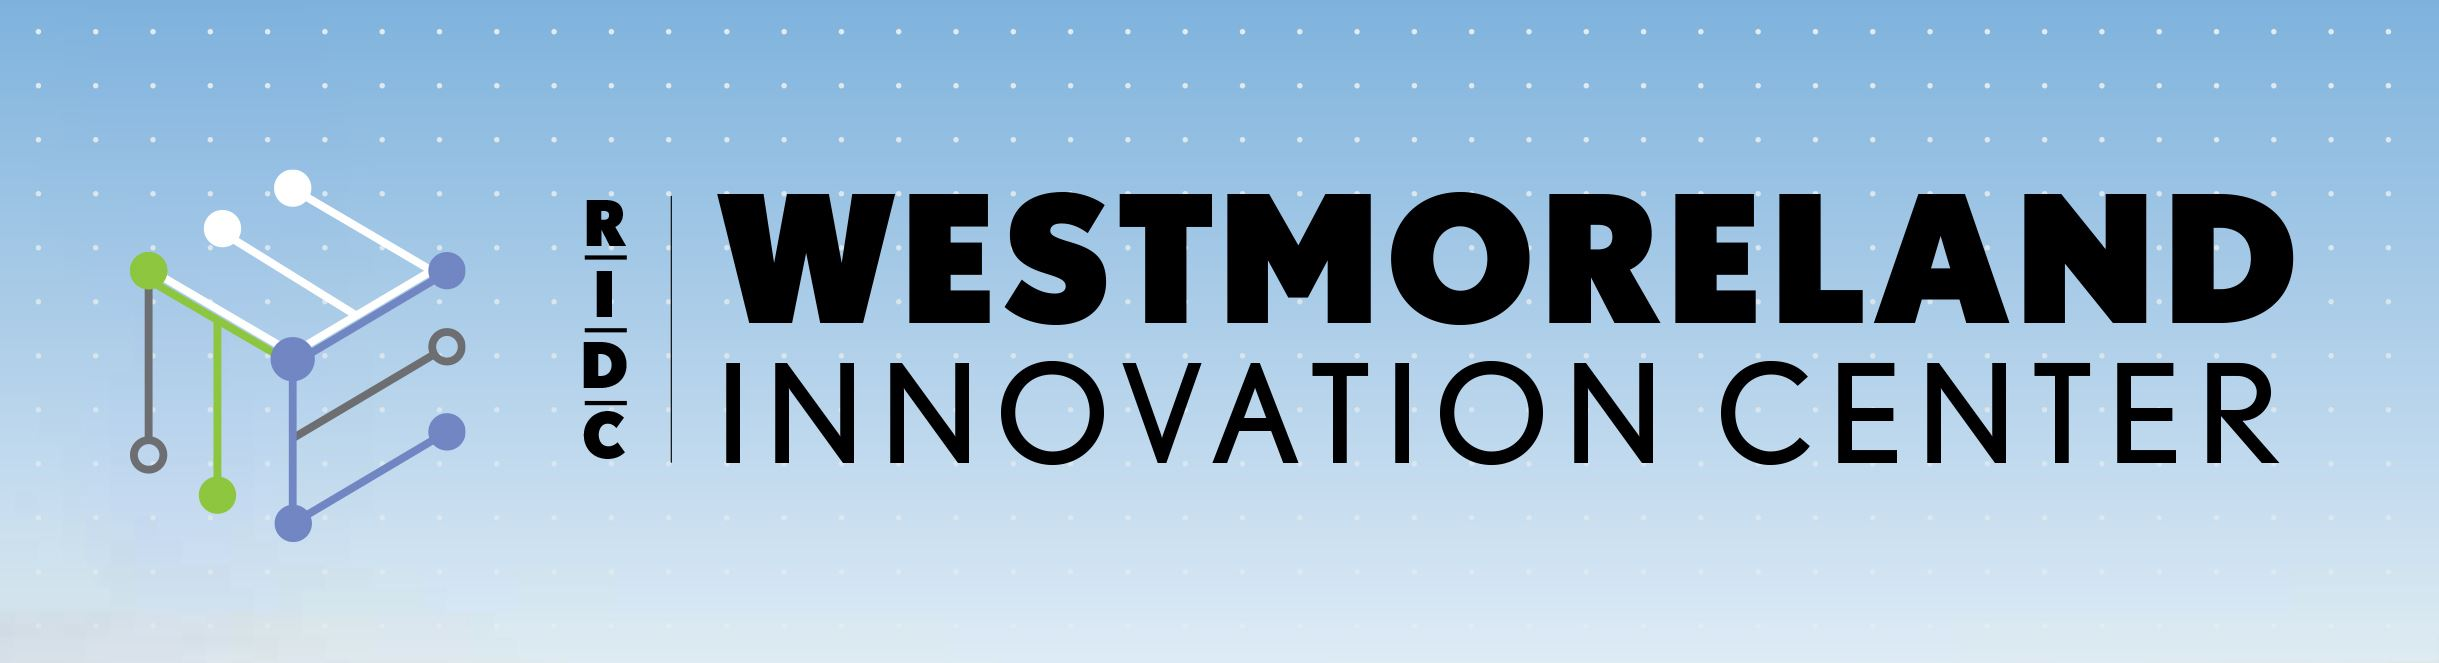 RIDC Westmoreland Innovation Center logo